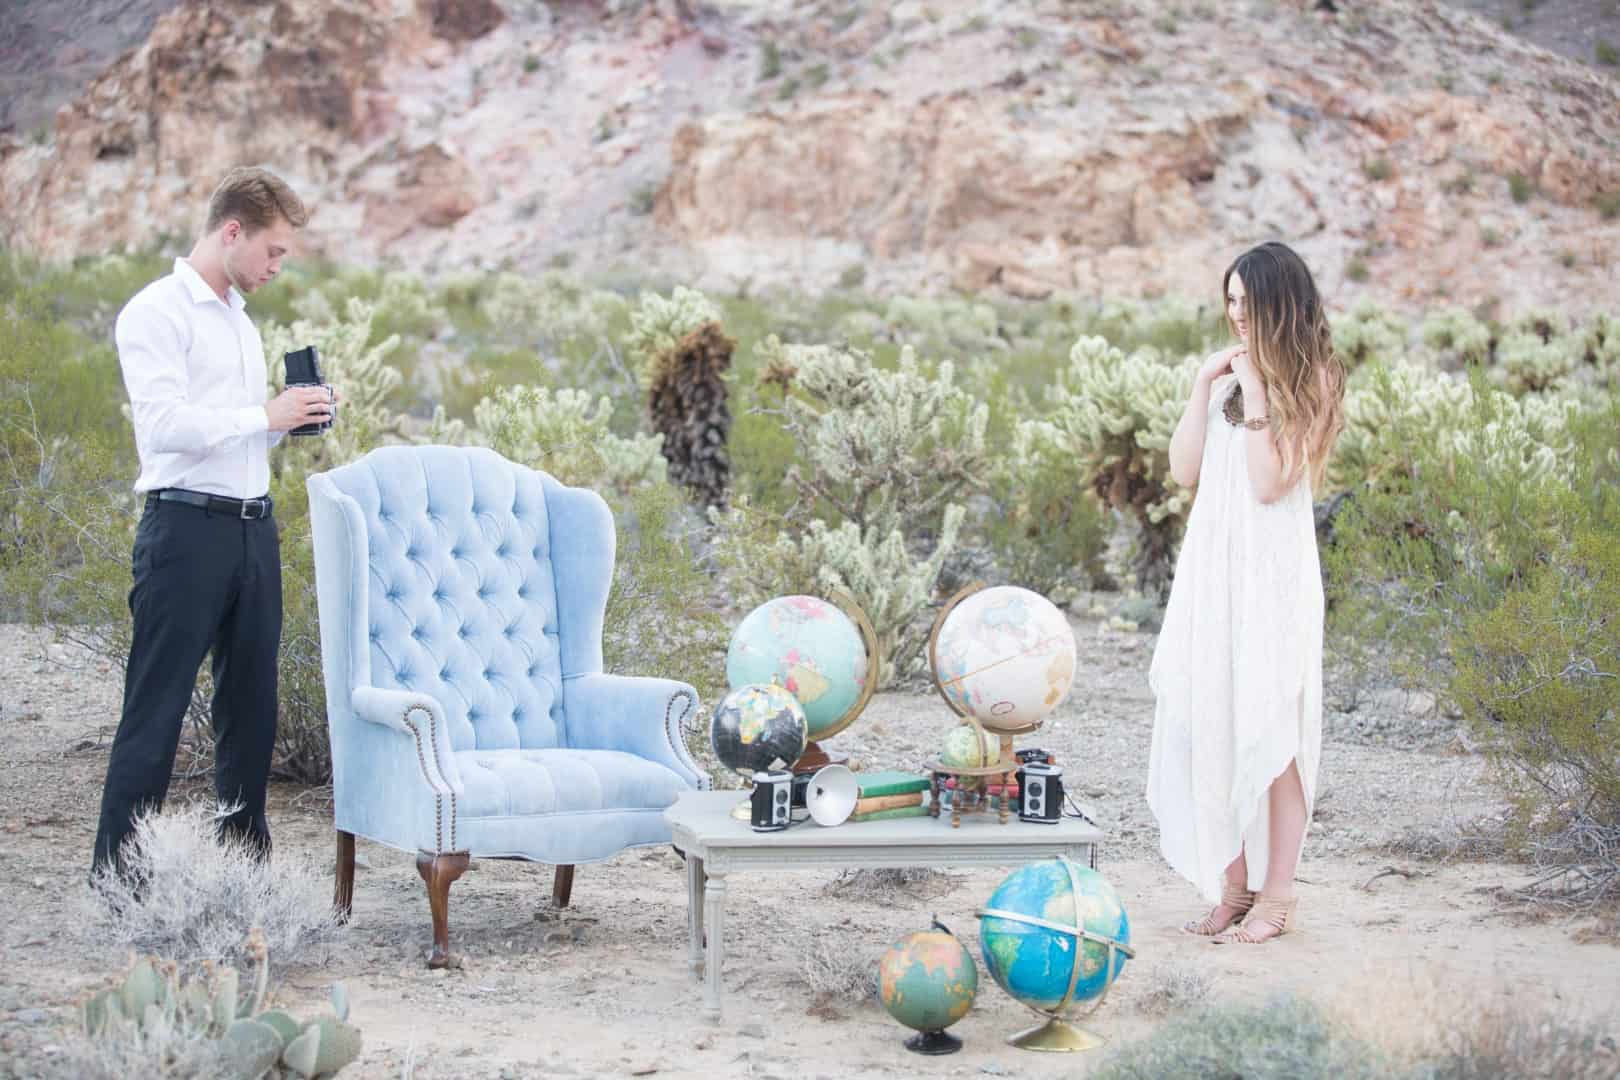 Plan a Vintage-Themed Elopement or Micro-Wedding